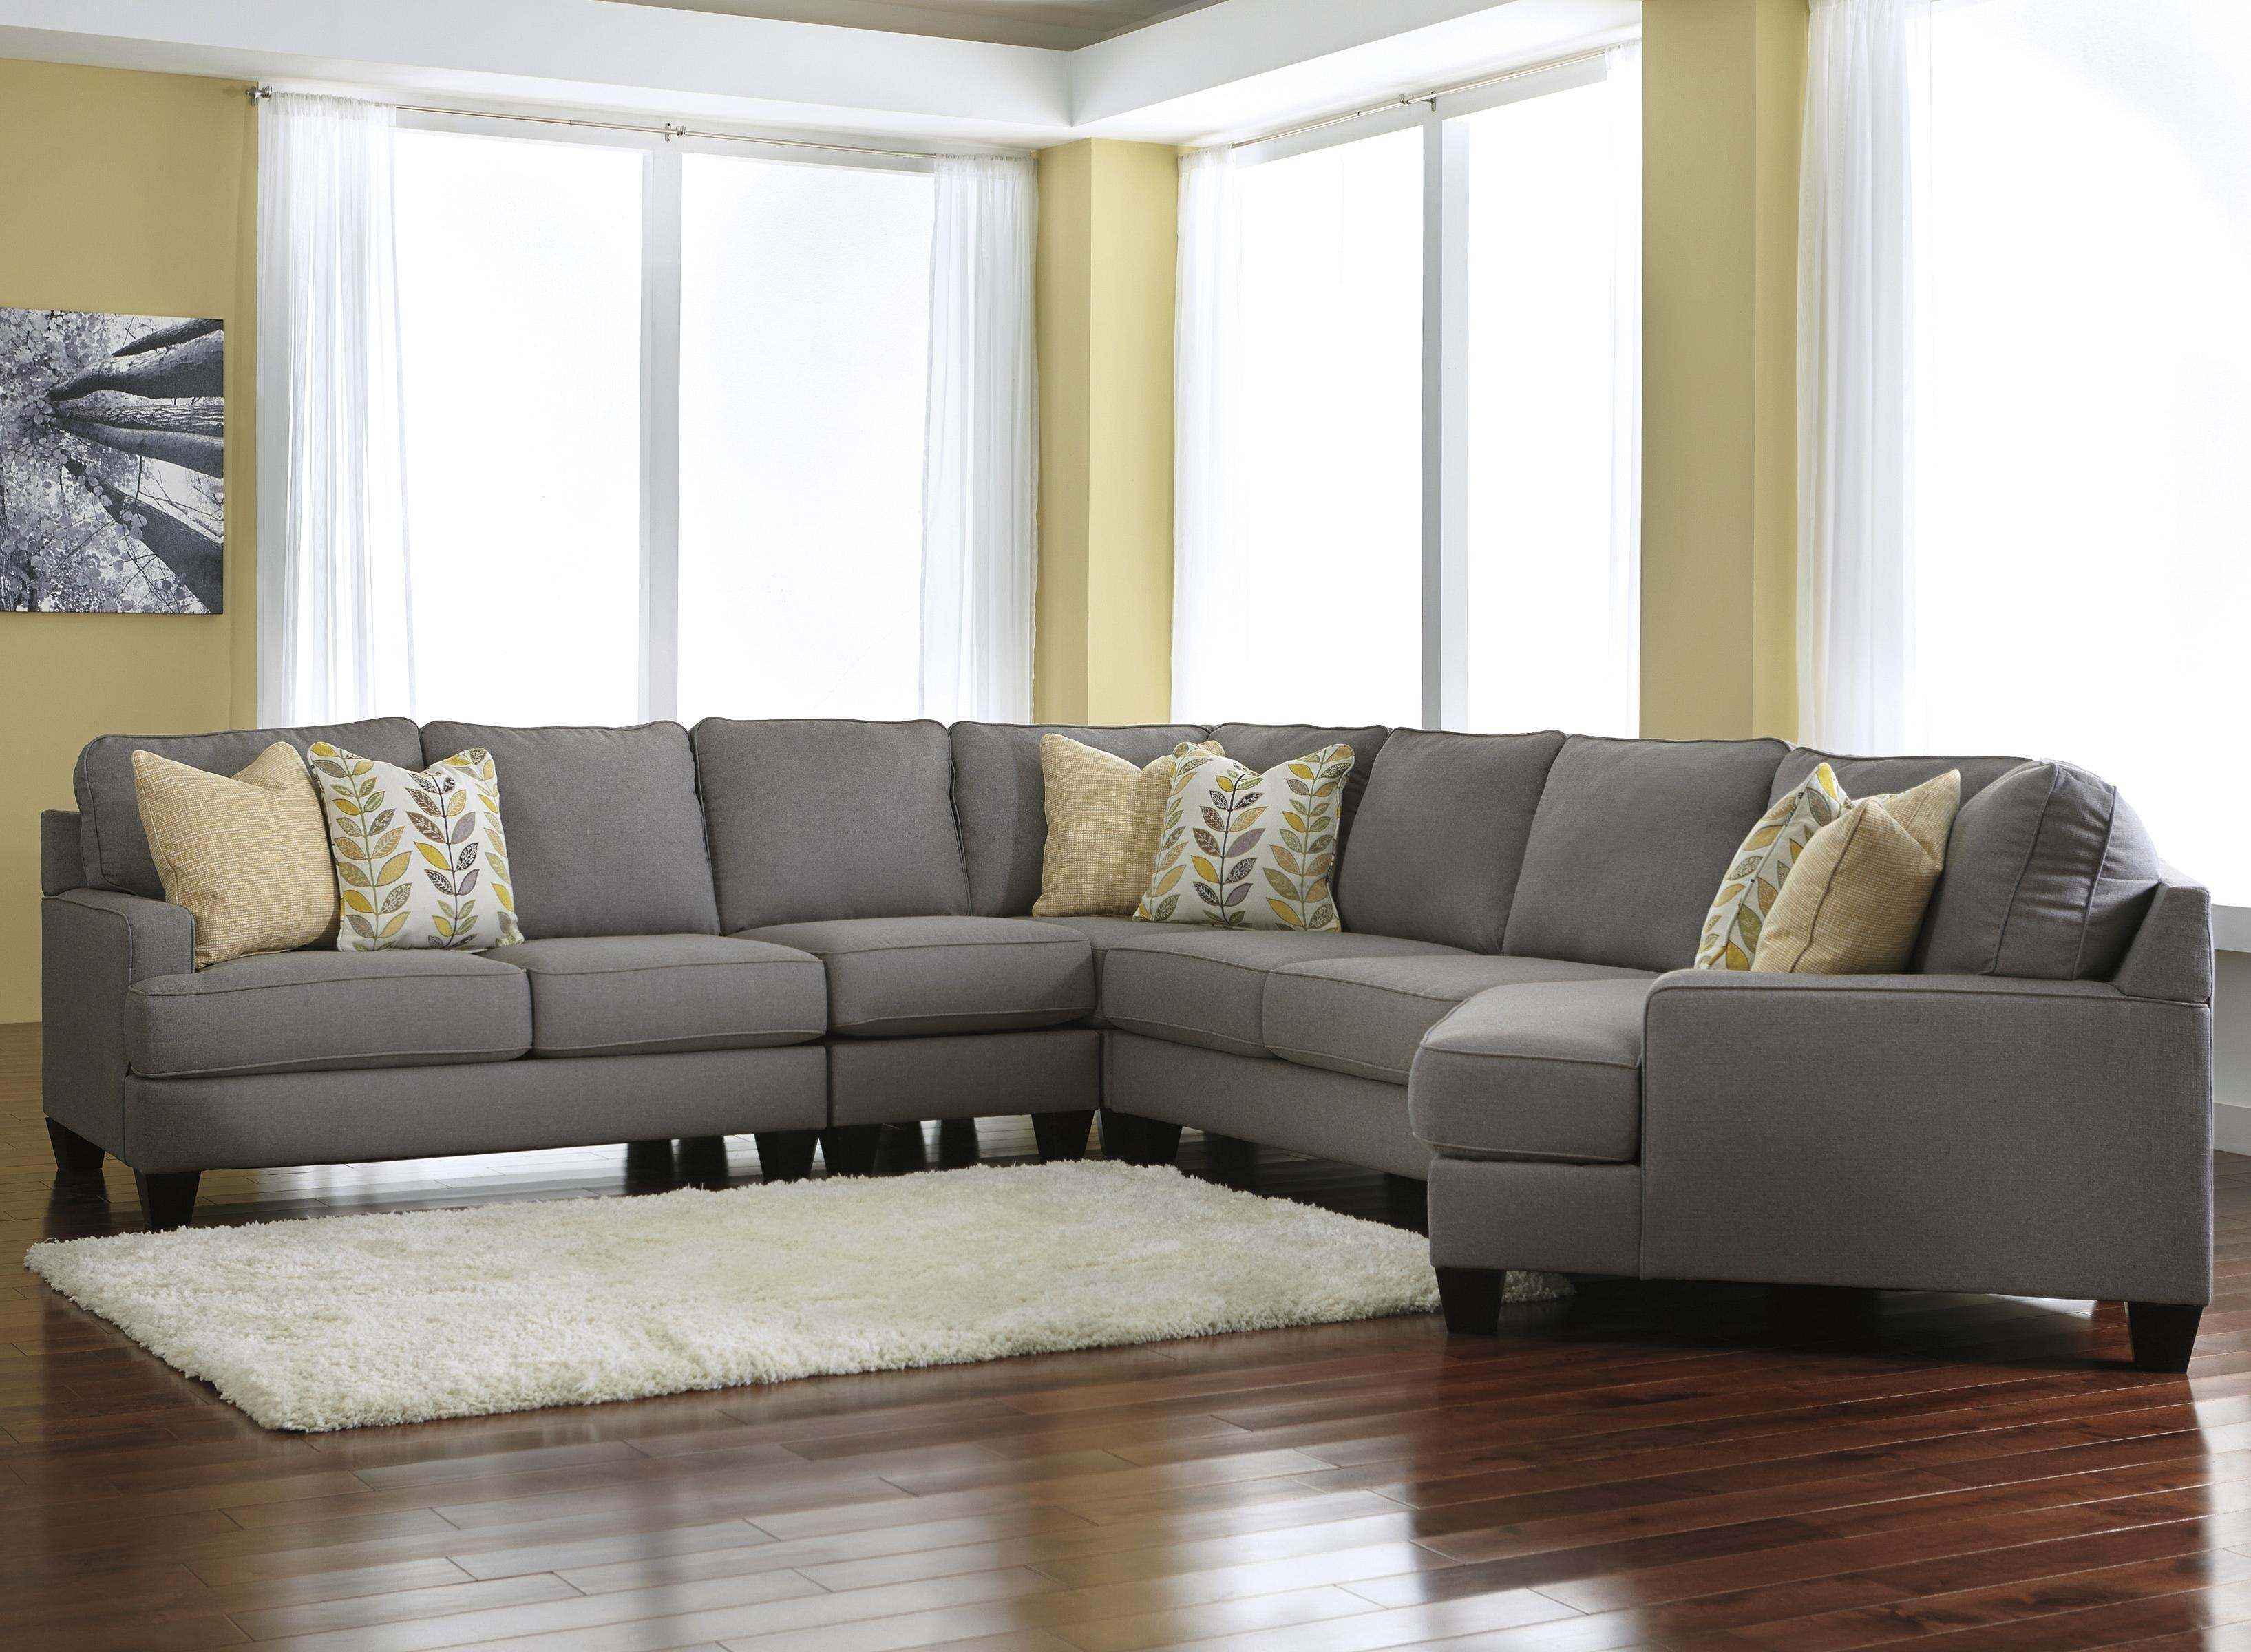 Chamberly – Alloy Modern 5 Piece Sectional Sofa With Right Cuddler Regarding Royal Furniture Sectional Sofas (Image 4 of 10)